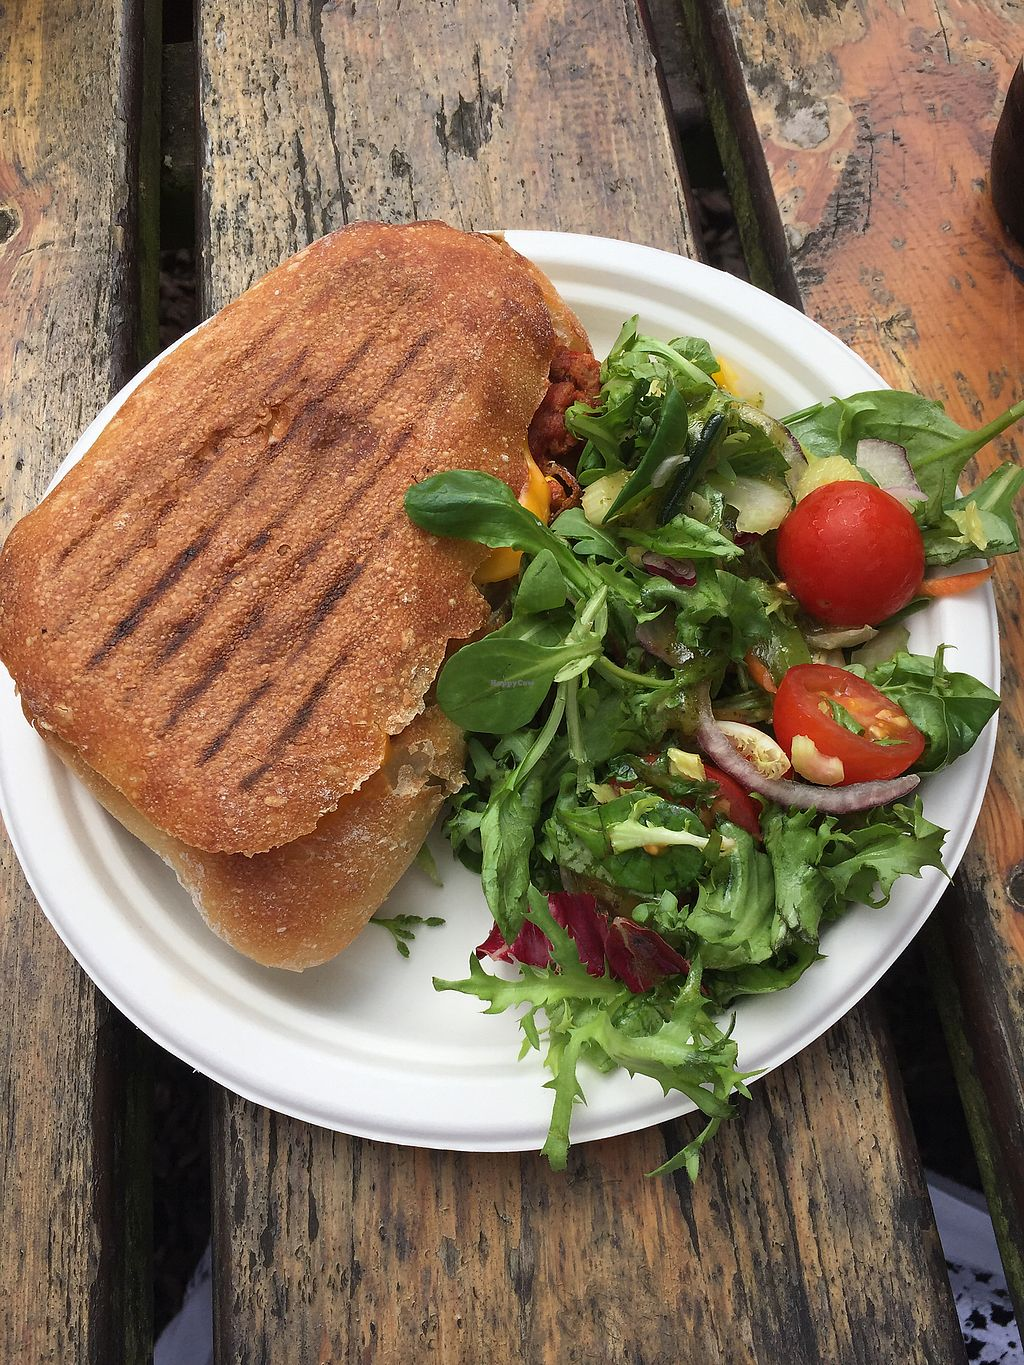 """Photo of Pilgrims Coffee House  by <a href=""""/members/profile/EmilyAlice"""">EmilyAlice</a> <br/>Vegan chilli toastie  <br/> July 29, 2017  - <a href='/contact/abuse/image/80900/286205'>Report</a>"""